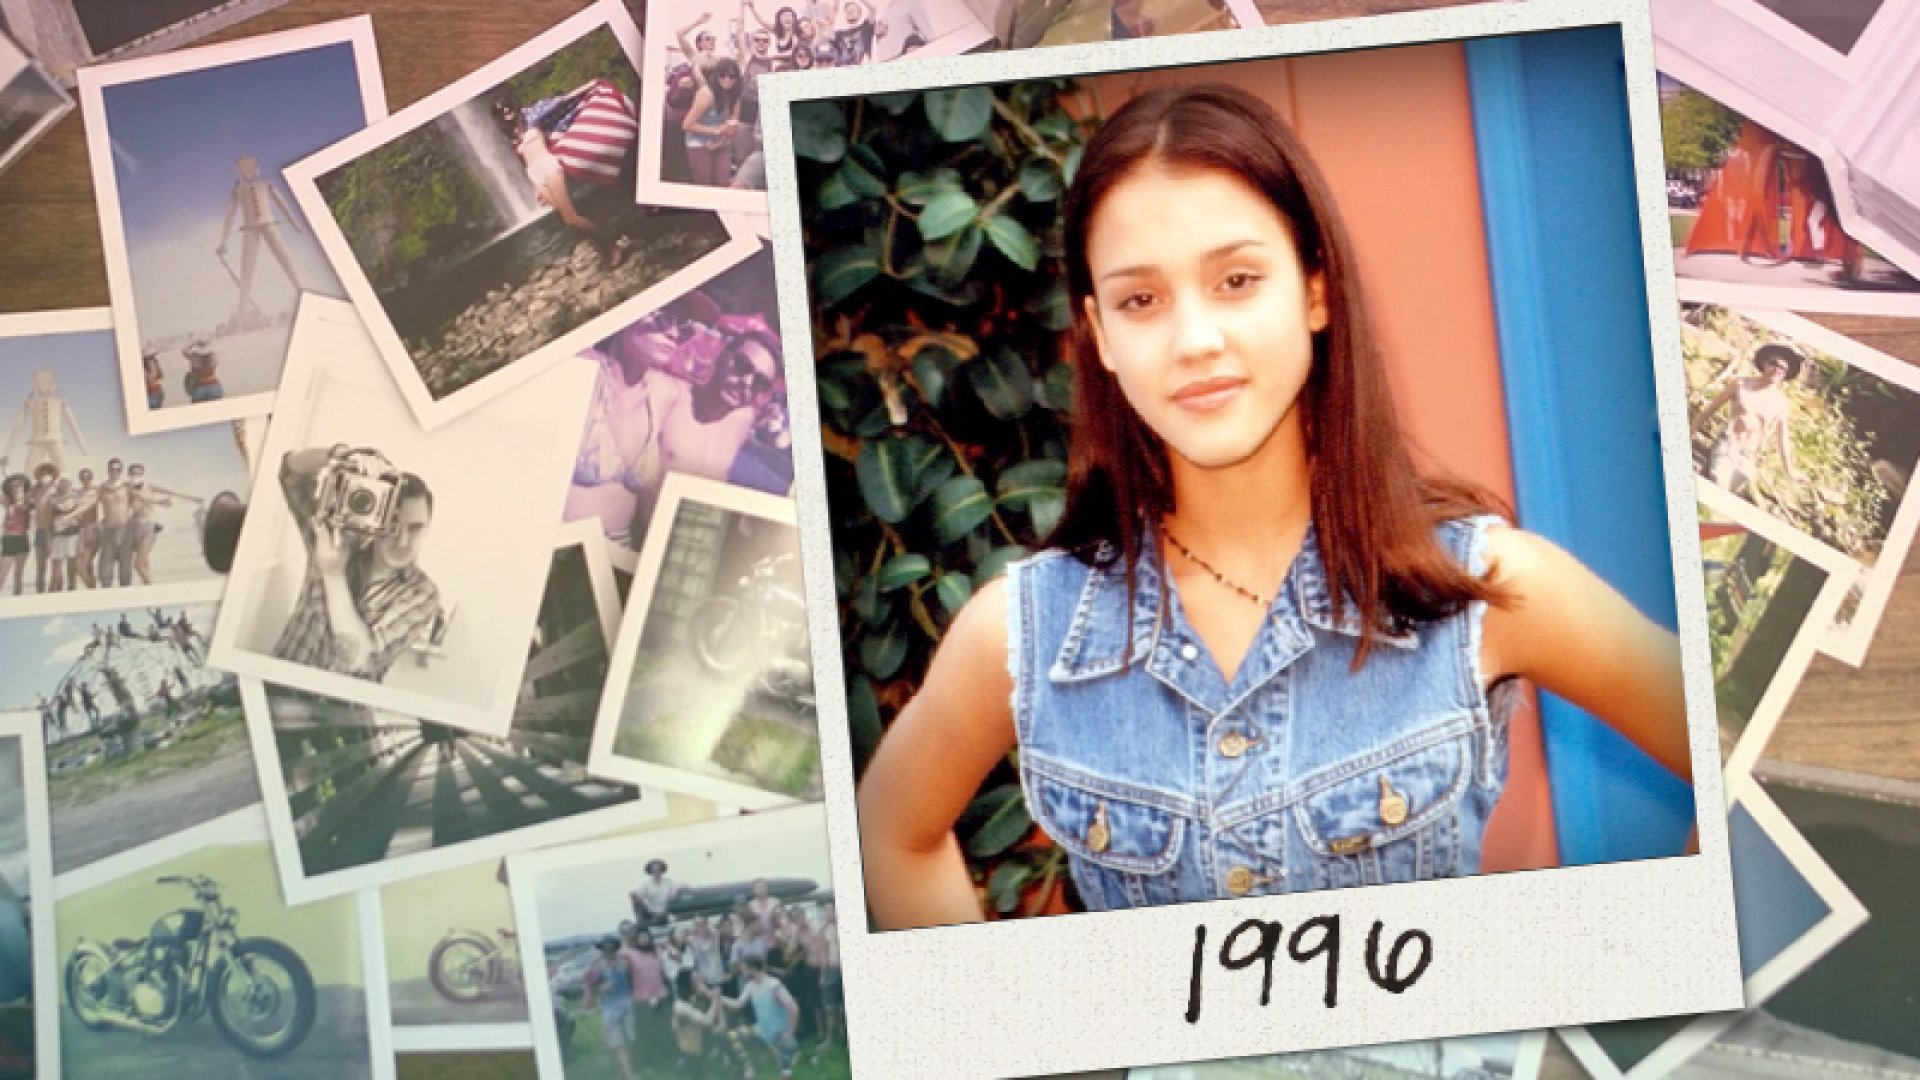 Jessica Alba as a teenager in 1996. She co-founded the Honest Company in 2011.